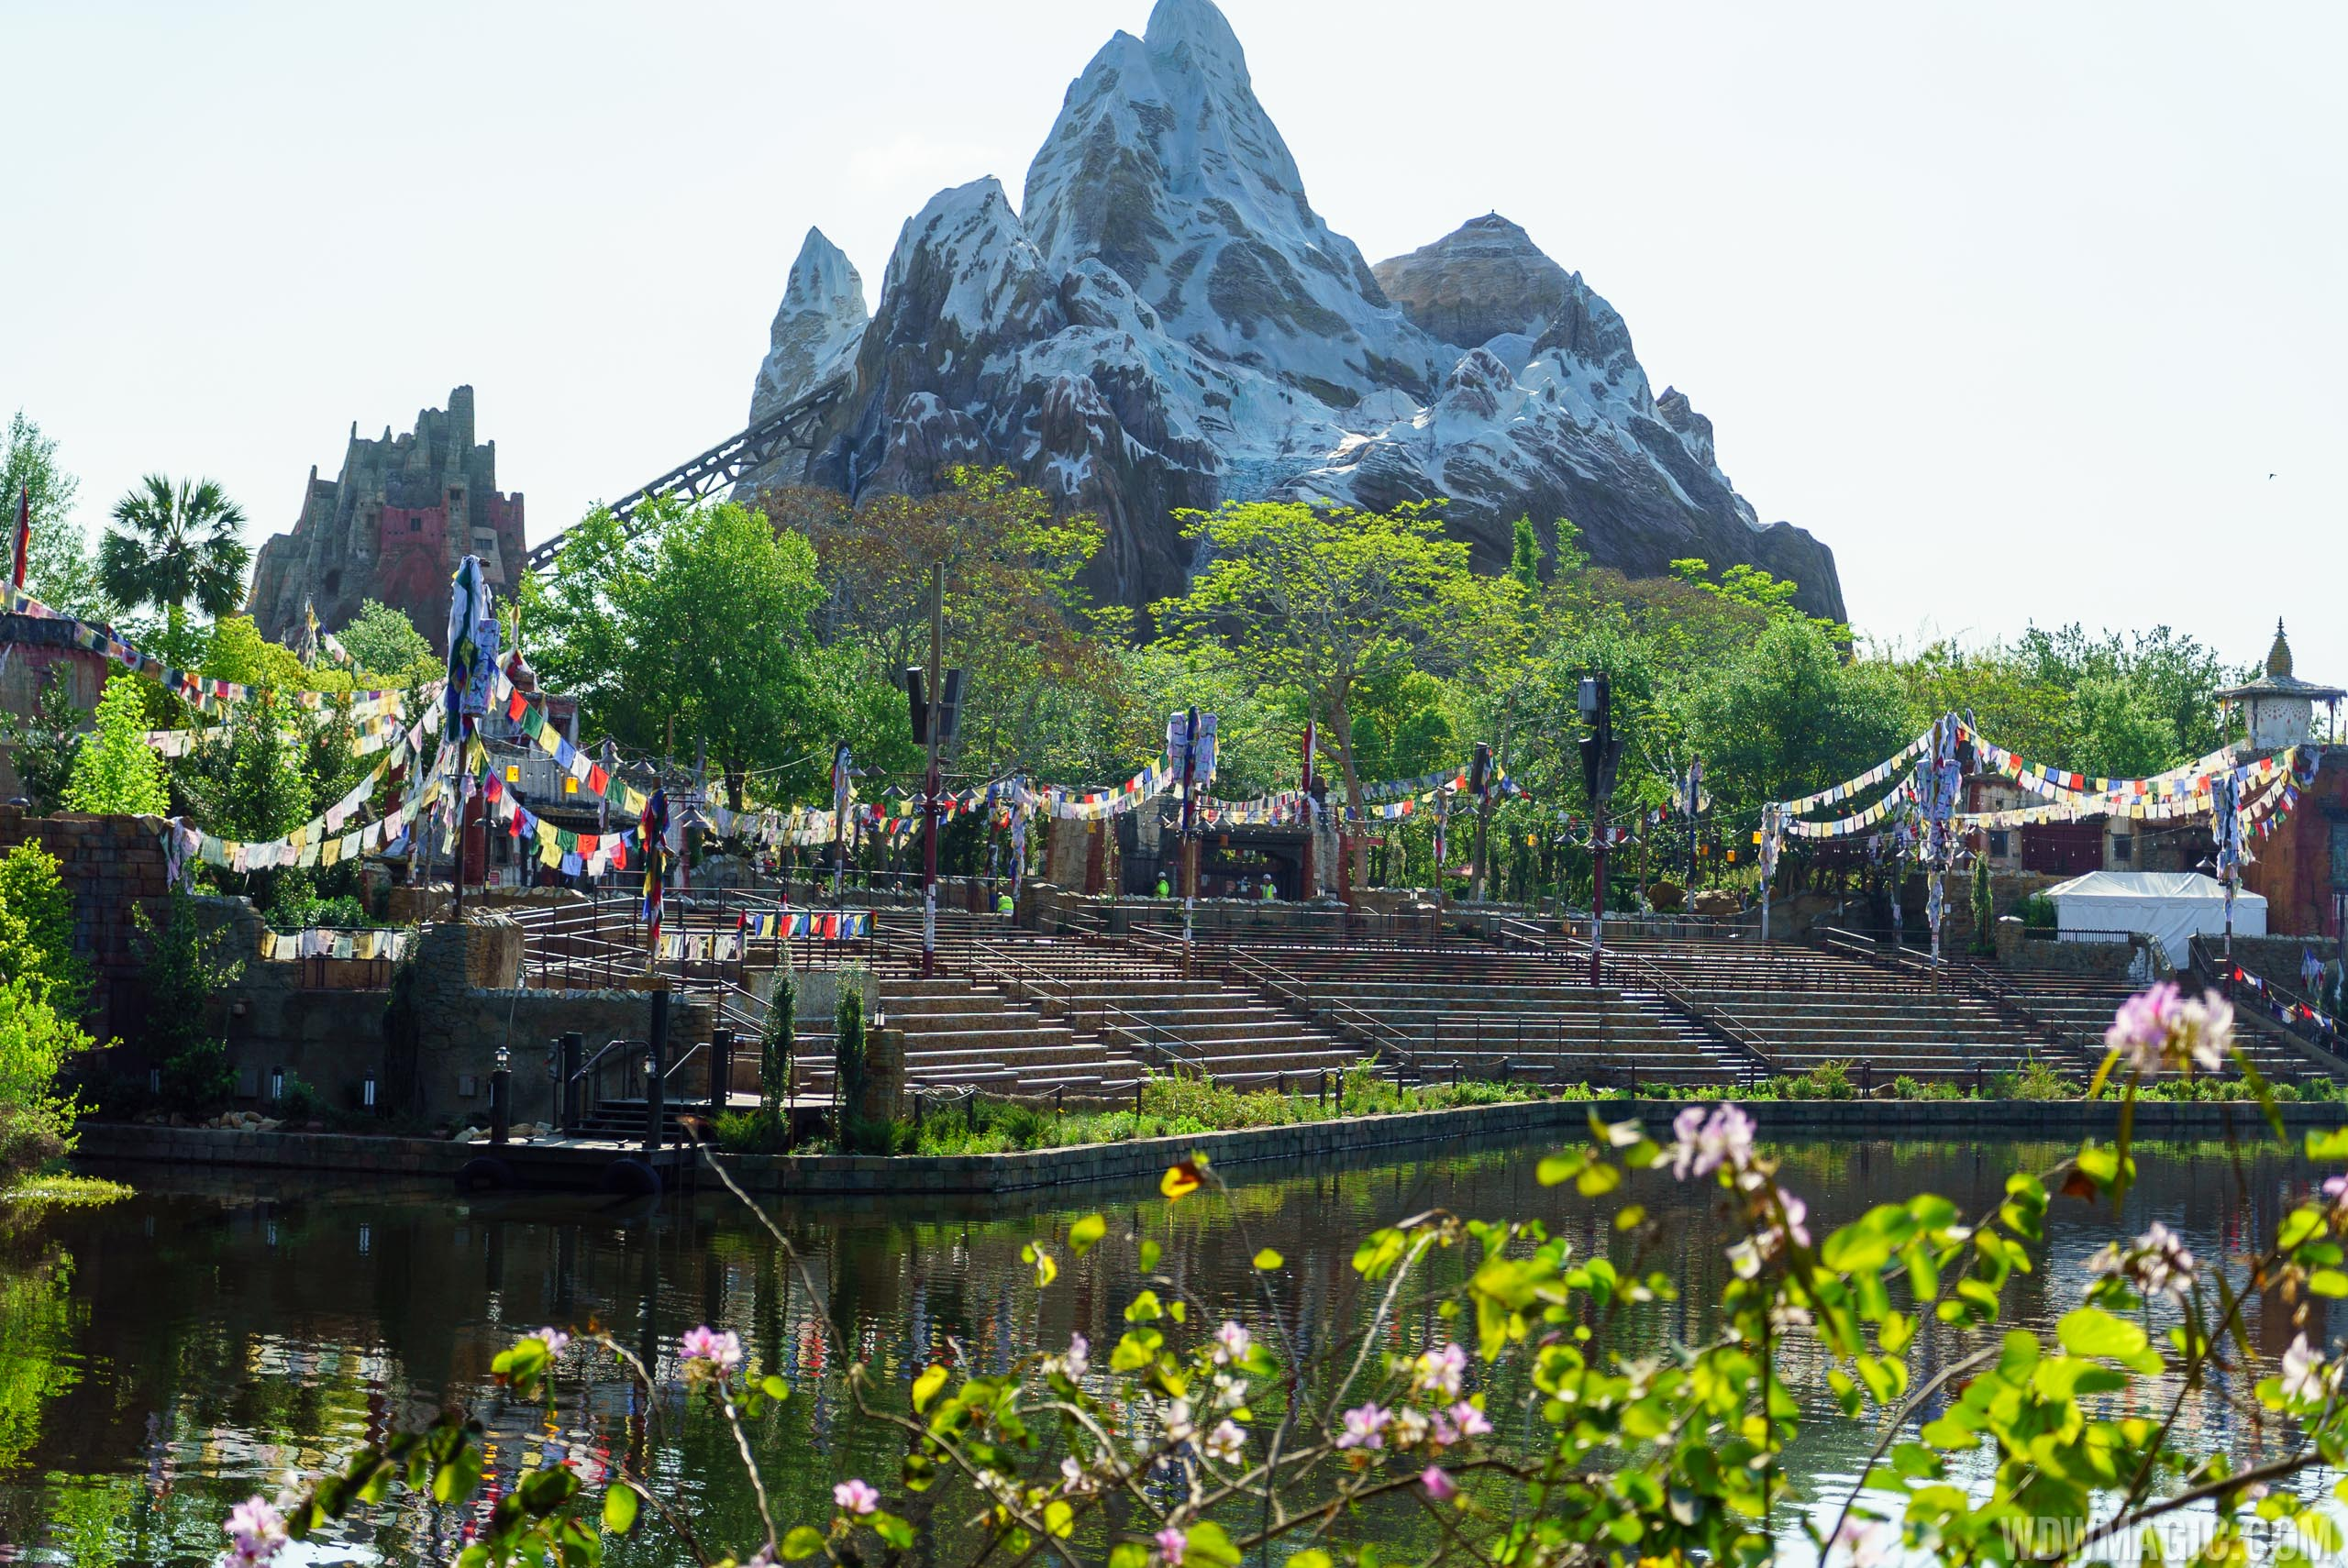 Showtimes and seating information for The Jungle Book: Alive with Magic